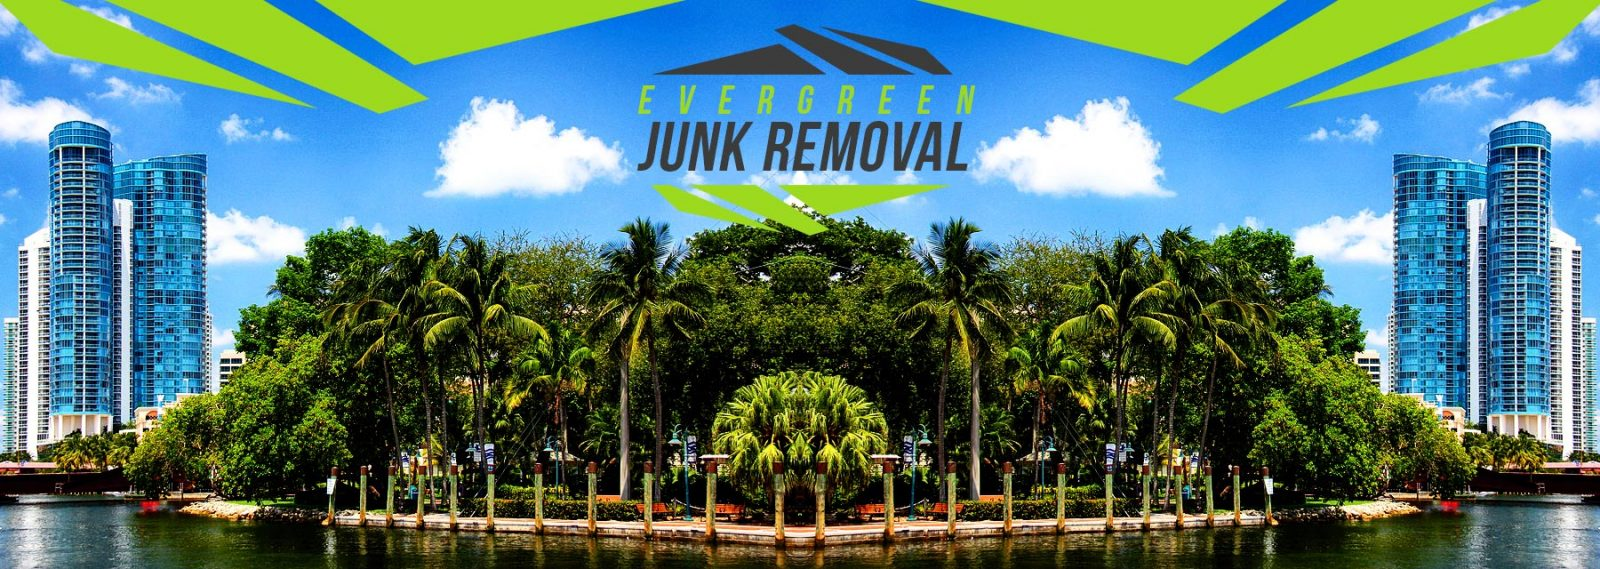 Hialeah Hot Tub Removal Company